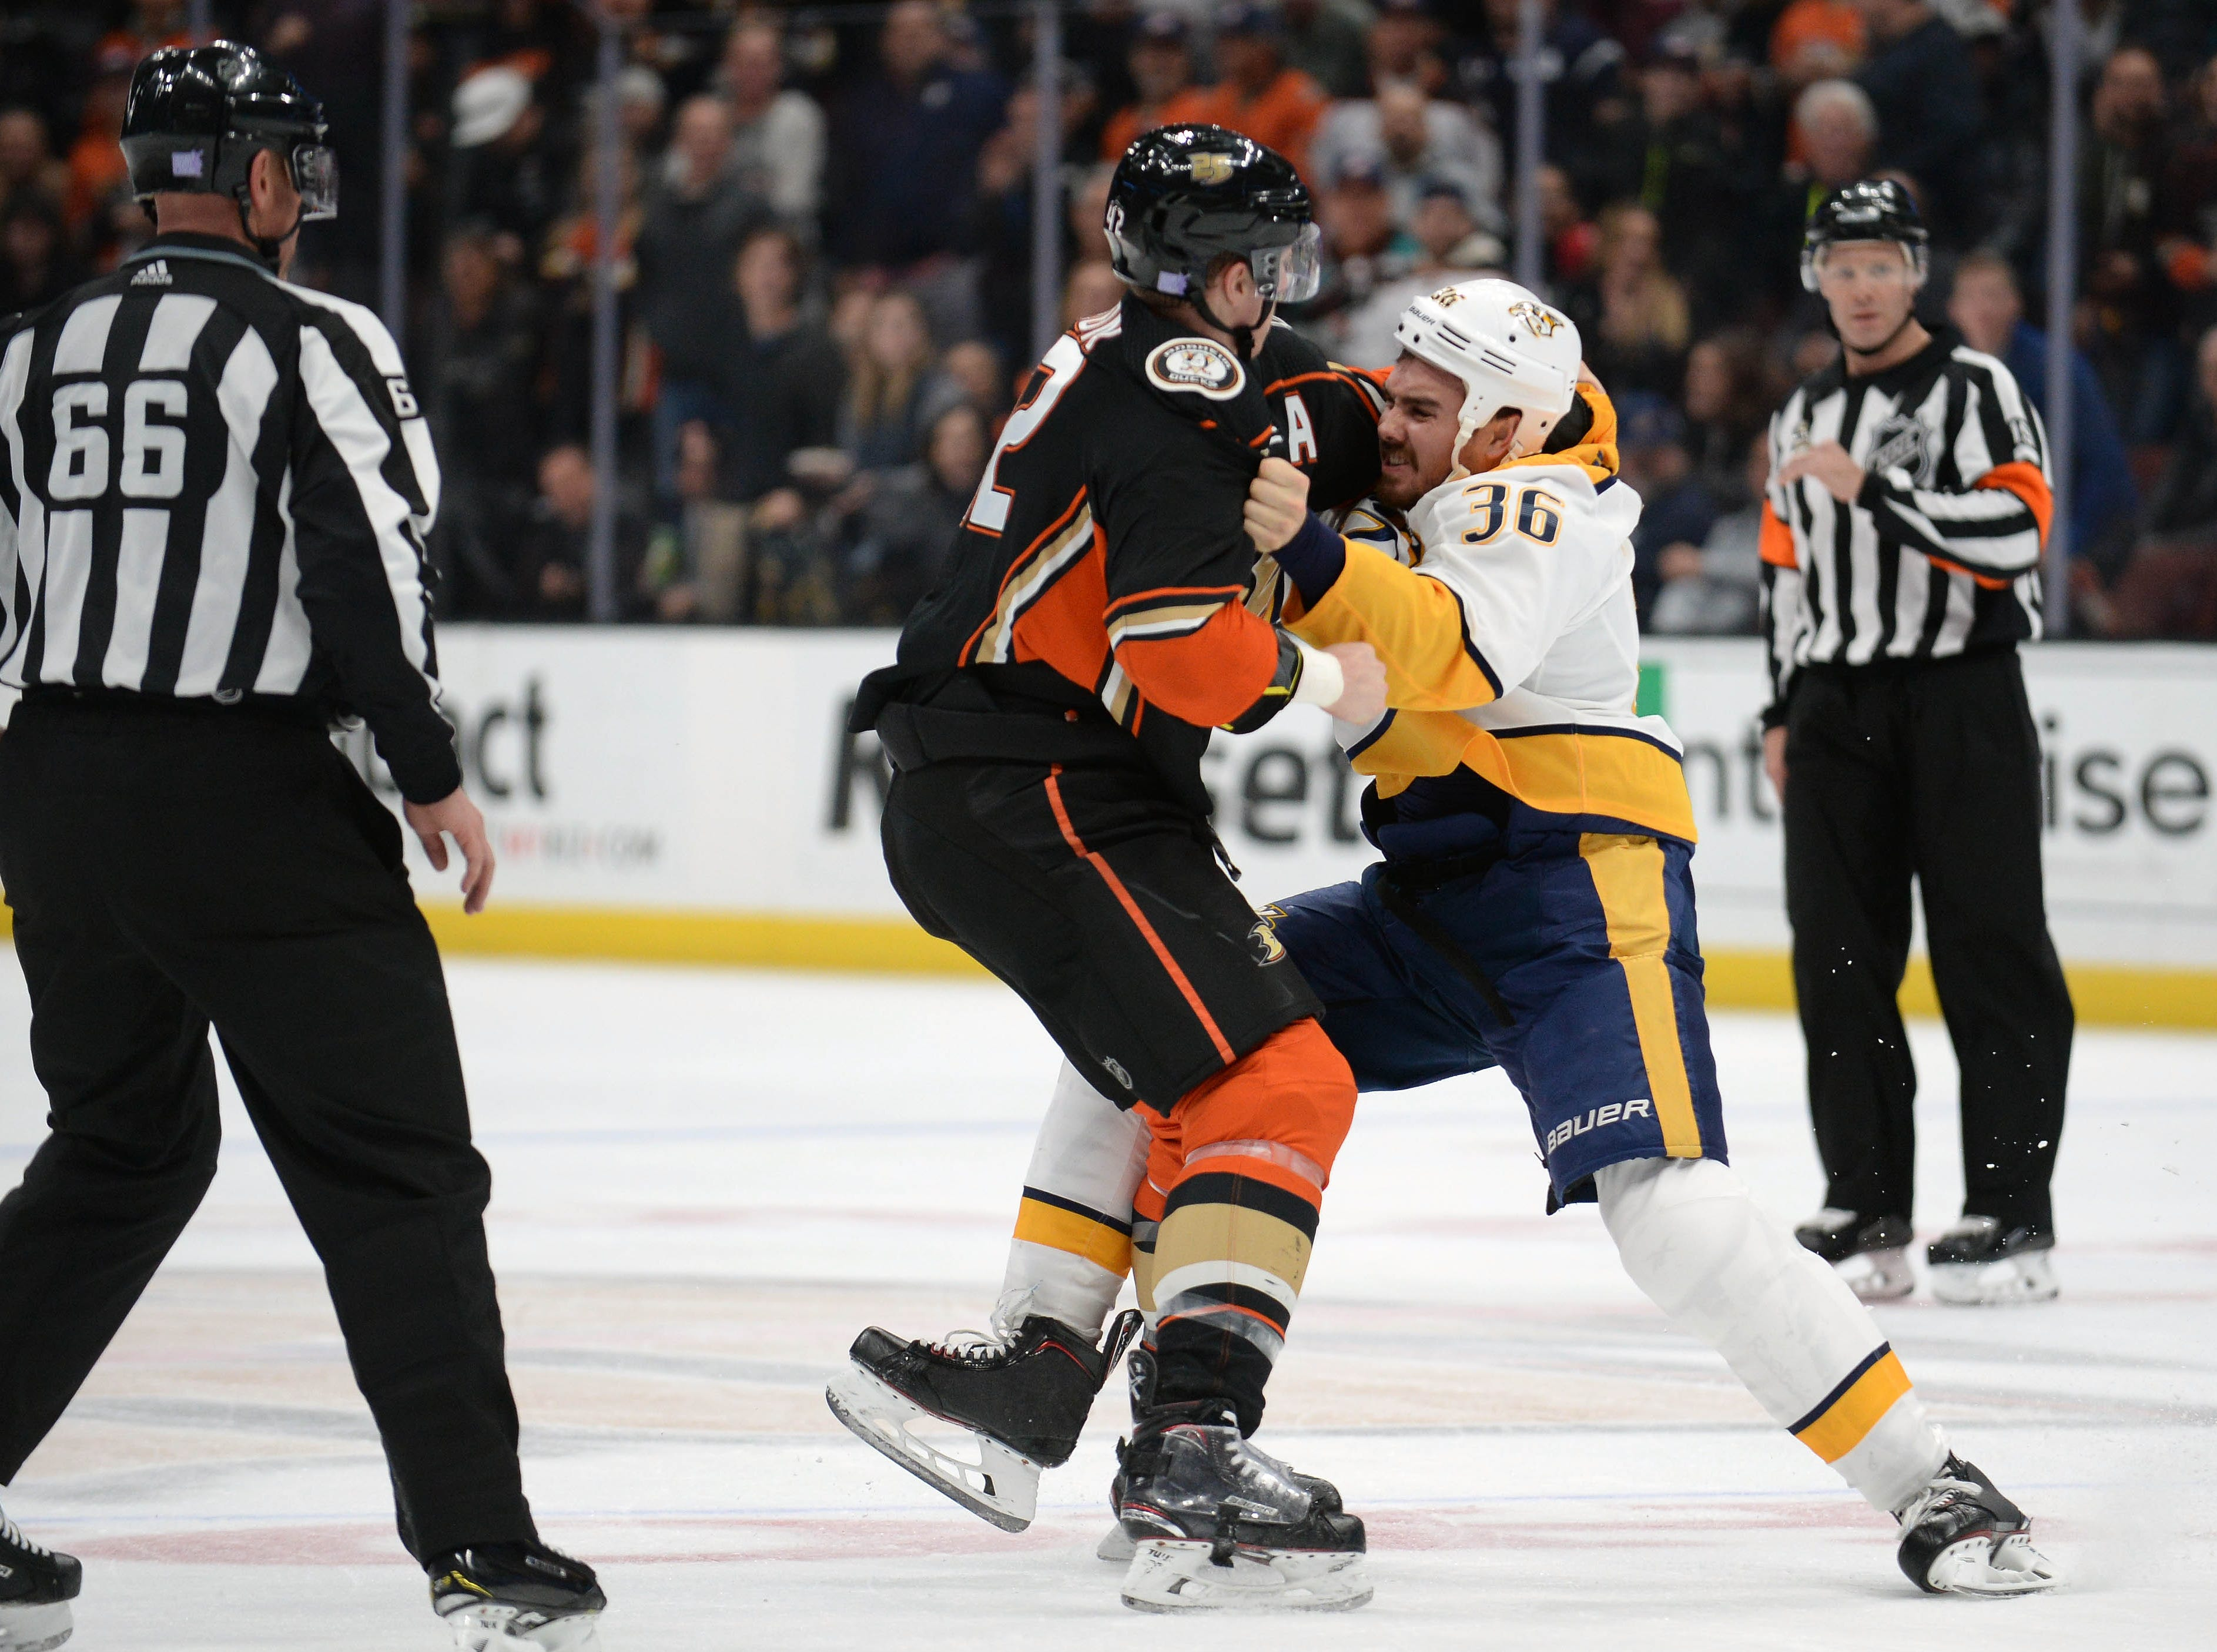 Nov. 12: Anaheim Ducks' Josh Manson vs. Nashville Predators' Zac Rinaldo.